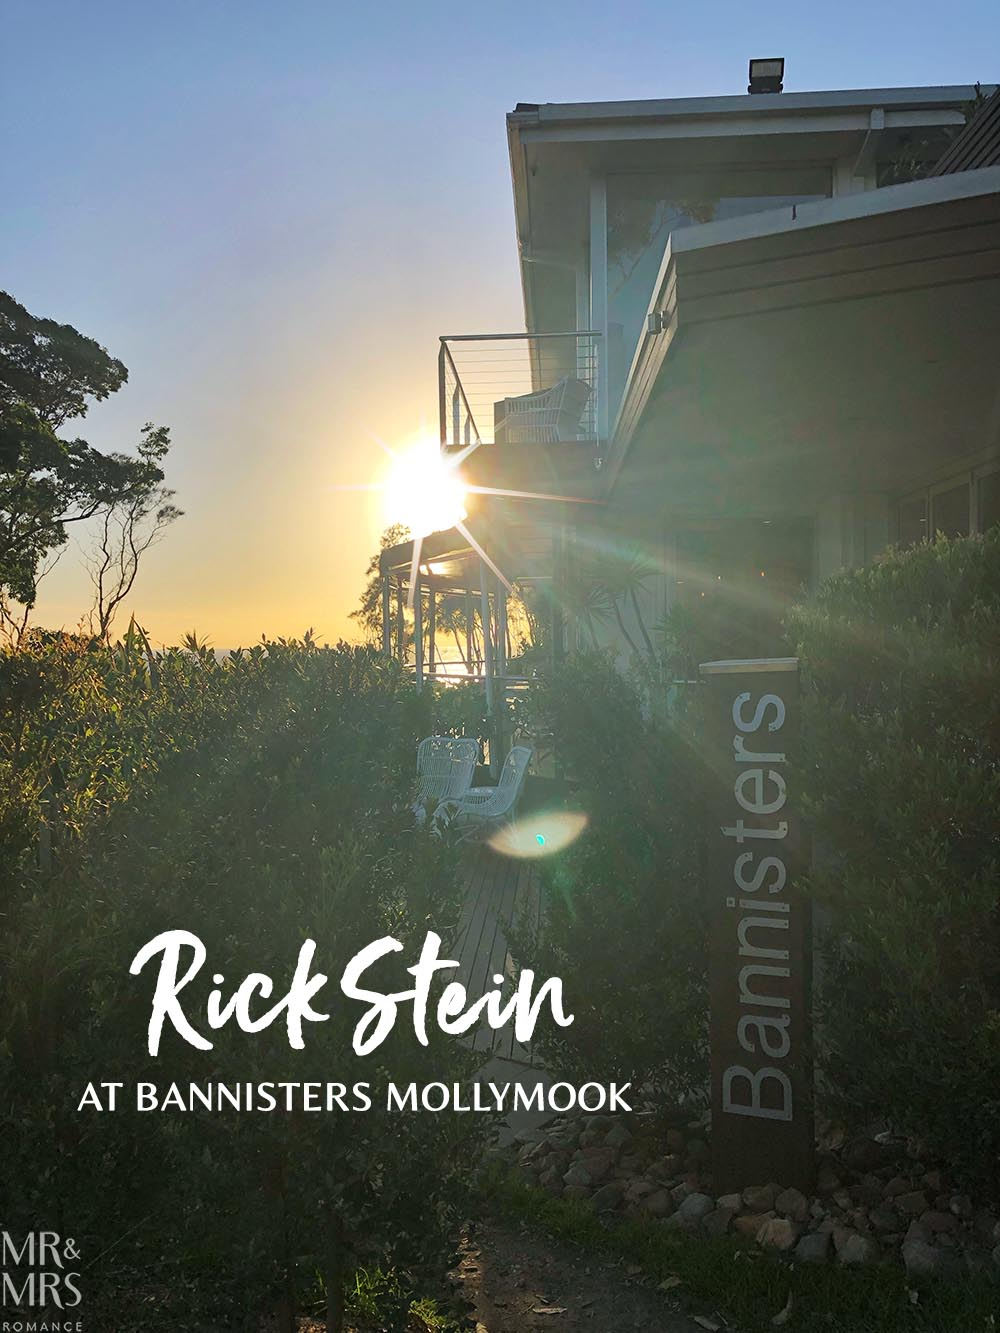 Rick Stein at Bannisters Mollymook, NSW